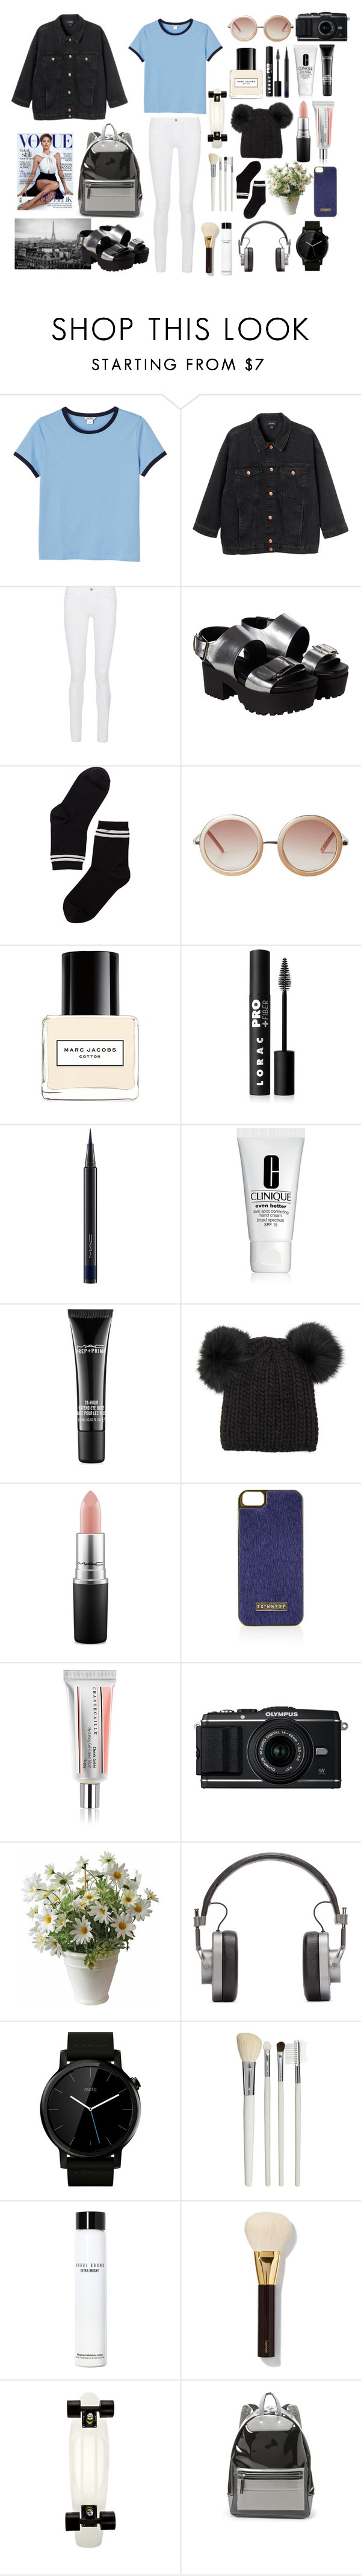 """Geen titel #69"" by naomilensen ❤ liked on Polyvore featuring moda, Monki, Frame Denim, Marc Jacobs, LORAC, MAC Cosmetics, Clinique, Eugenia Kim, Topshop e Chantecaille"